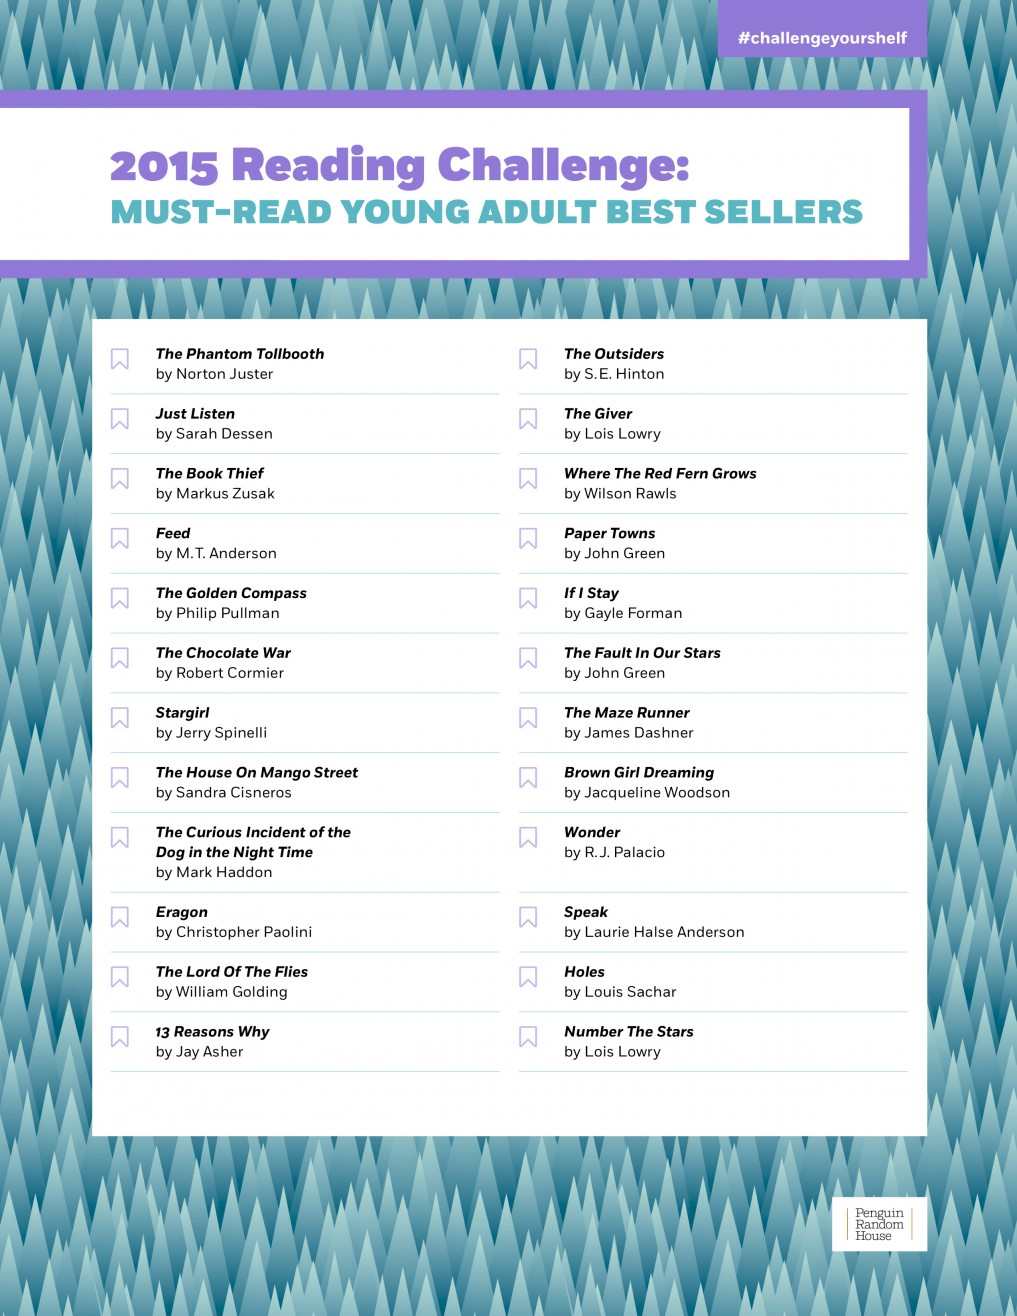 readingchallenge-must-read-ya-best-sellers